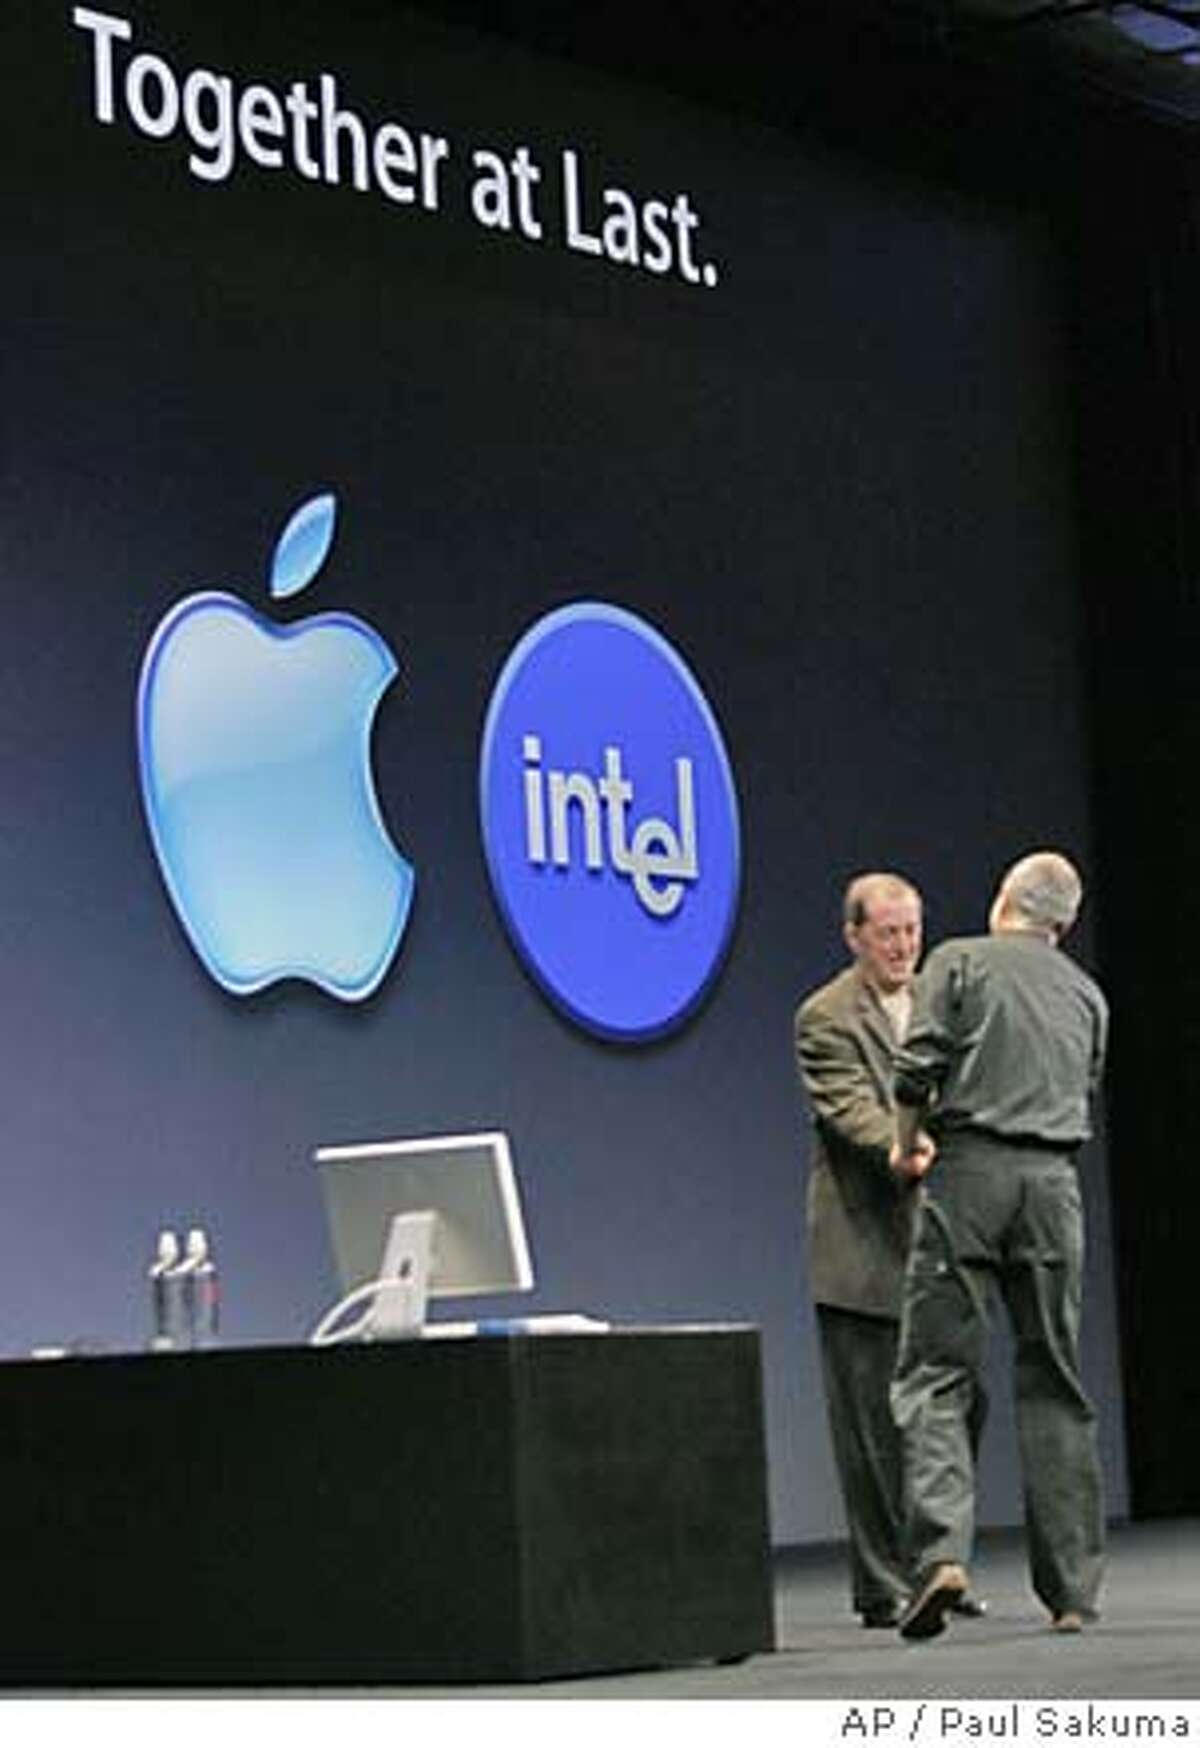 Apple Computer Inc. CEO Steve Jobs, right, shake hands with Intel Corp. CEO Paul Otellini, left, at Apples Worldwide Developers Conference in San Francisco, Monday, June 6, 2005. Apple announced it will discontinue using microprocessor chips made by IBM in favor of Intel chips. (AP Photo/Paul Sakuma)